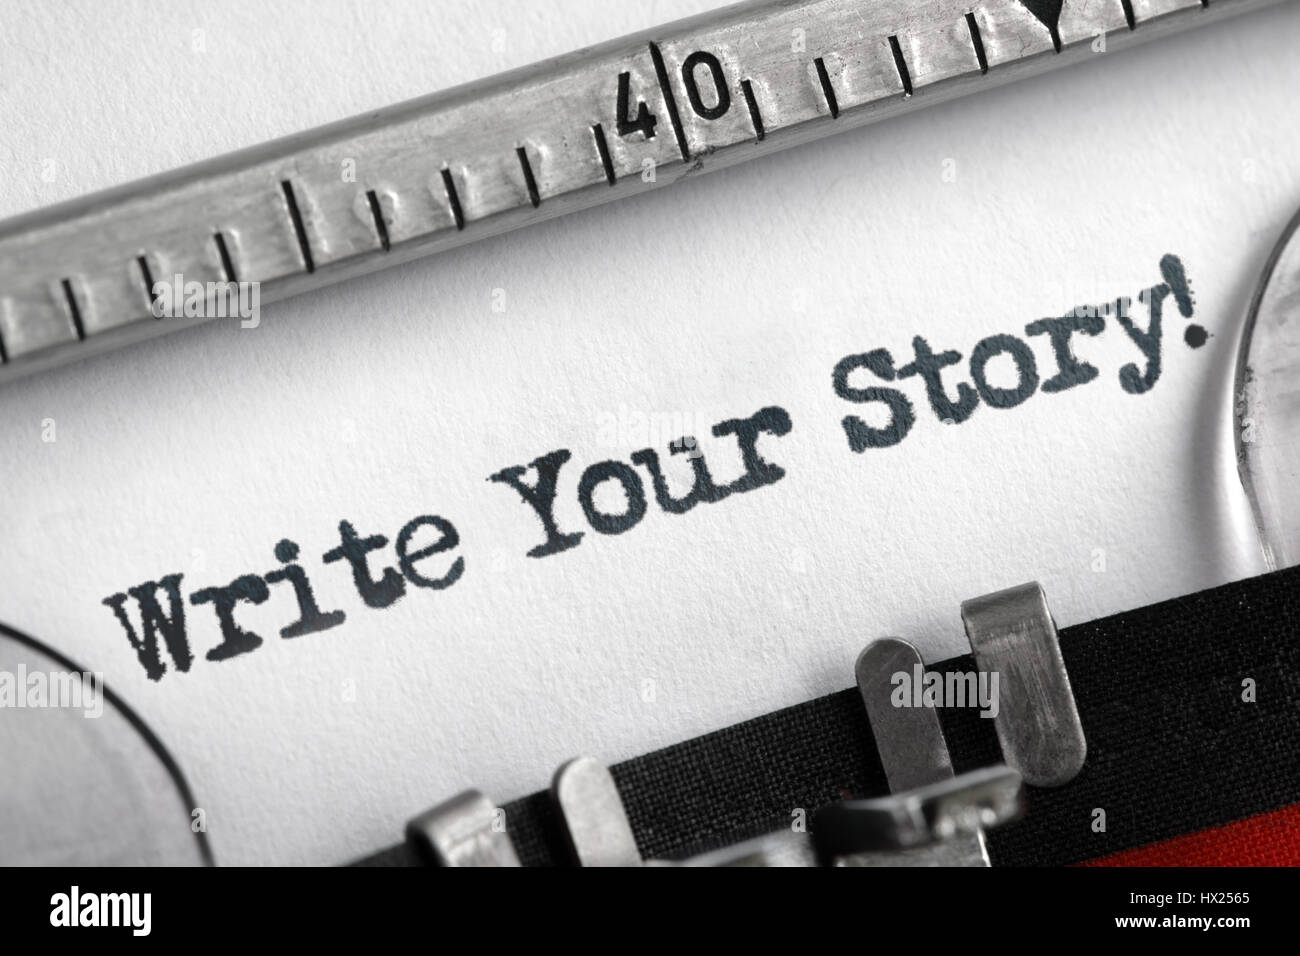 Write your story written on an old typewriter concept for unique, individual or personal life history message - Stock Image